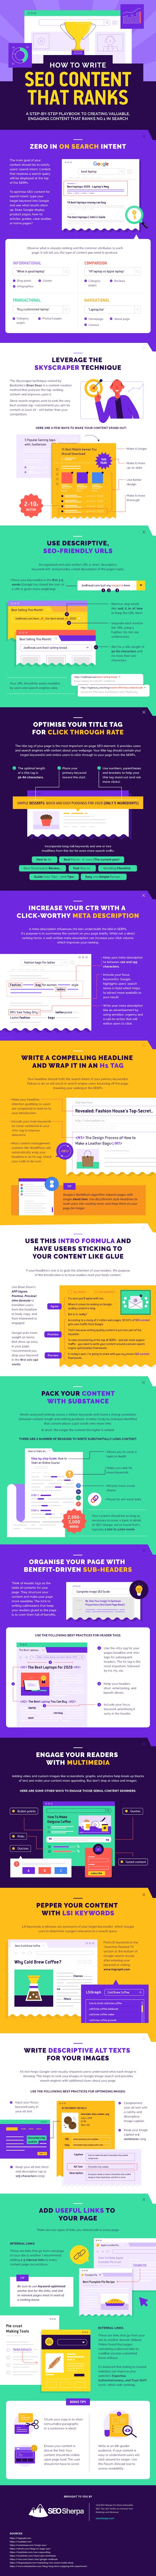 13 Steps To Writing Content That Ranks